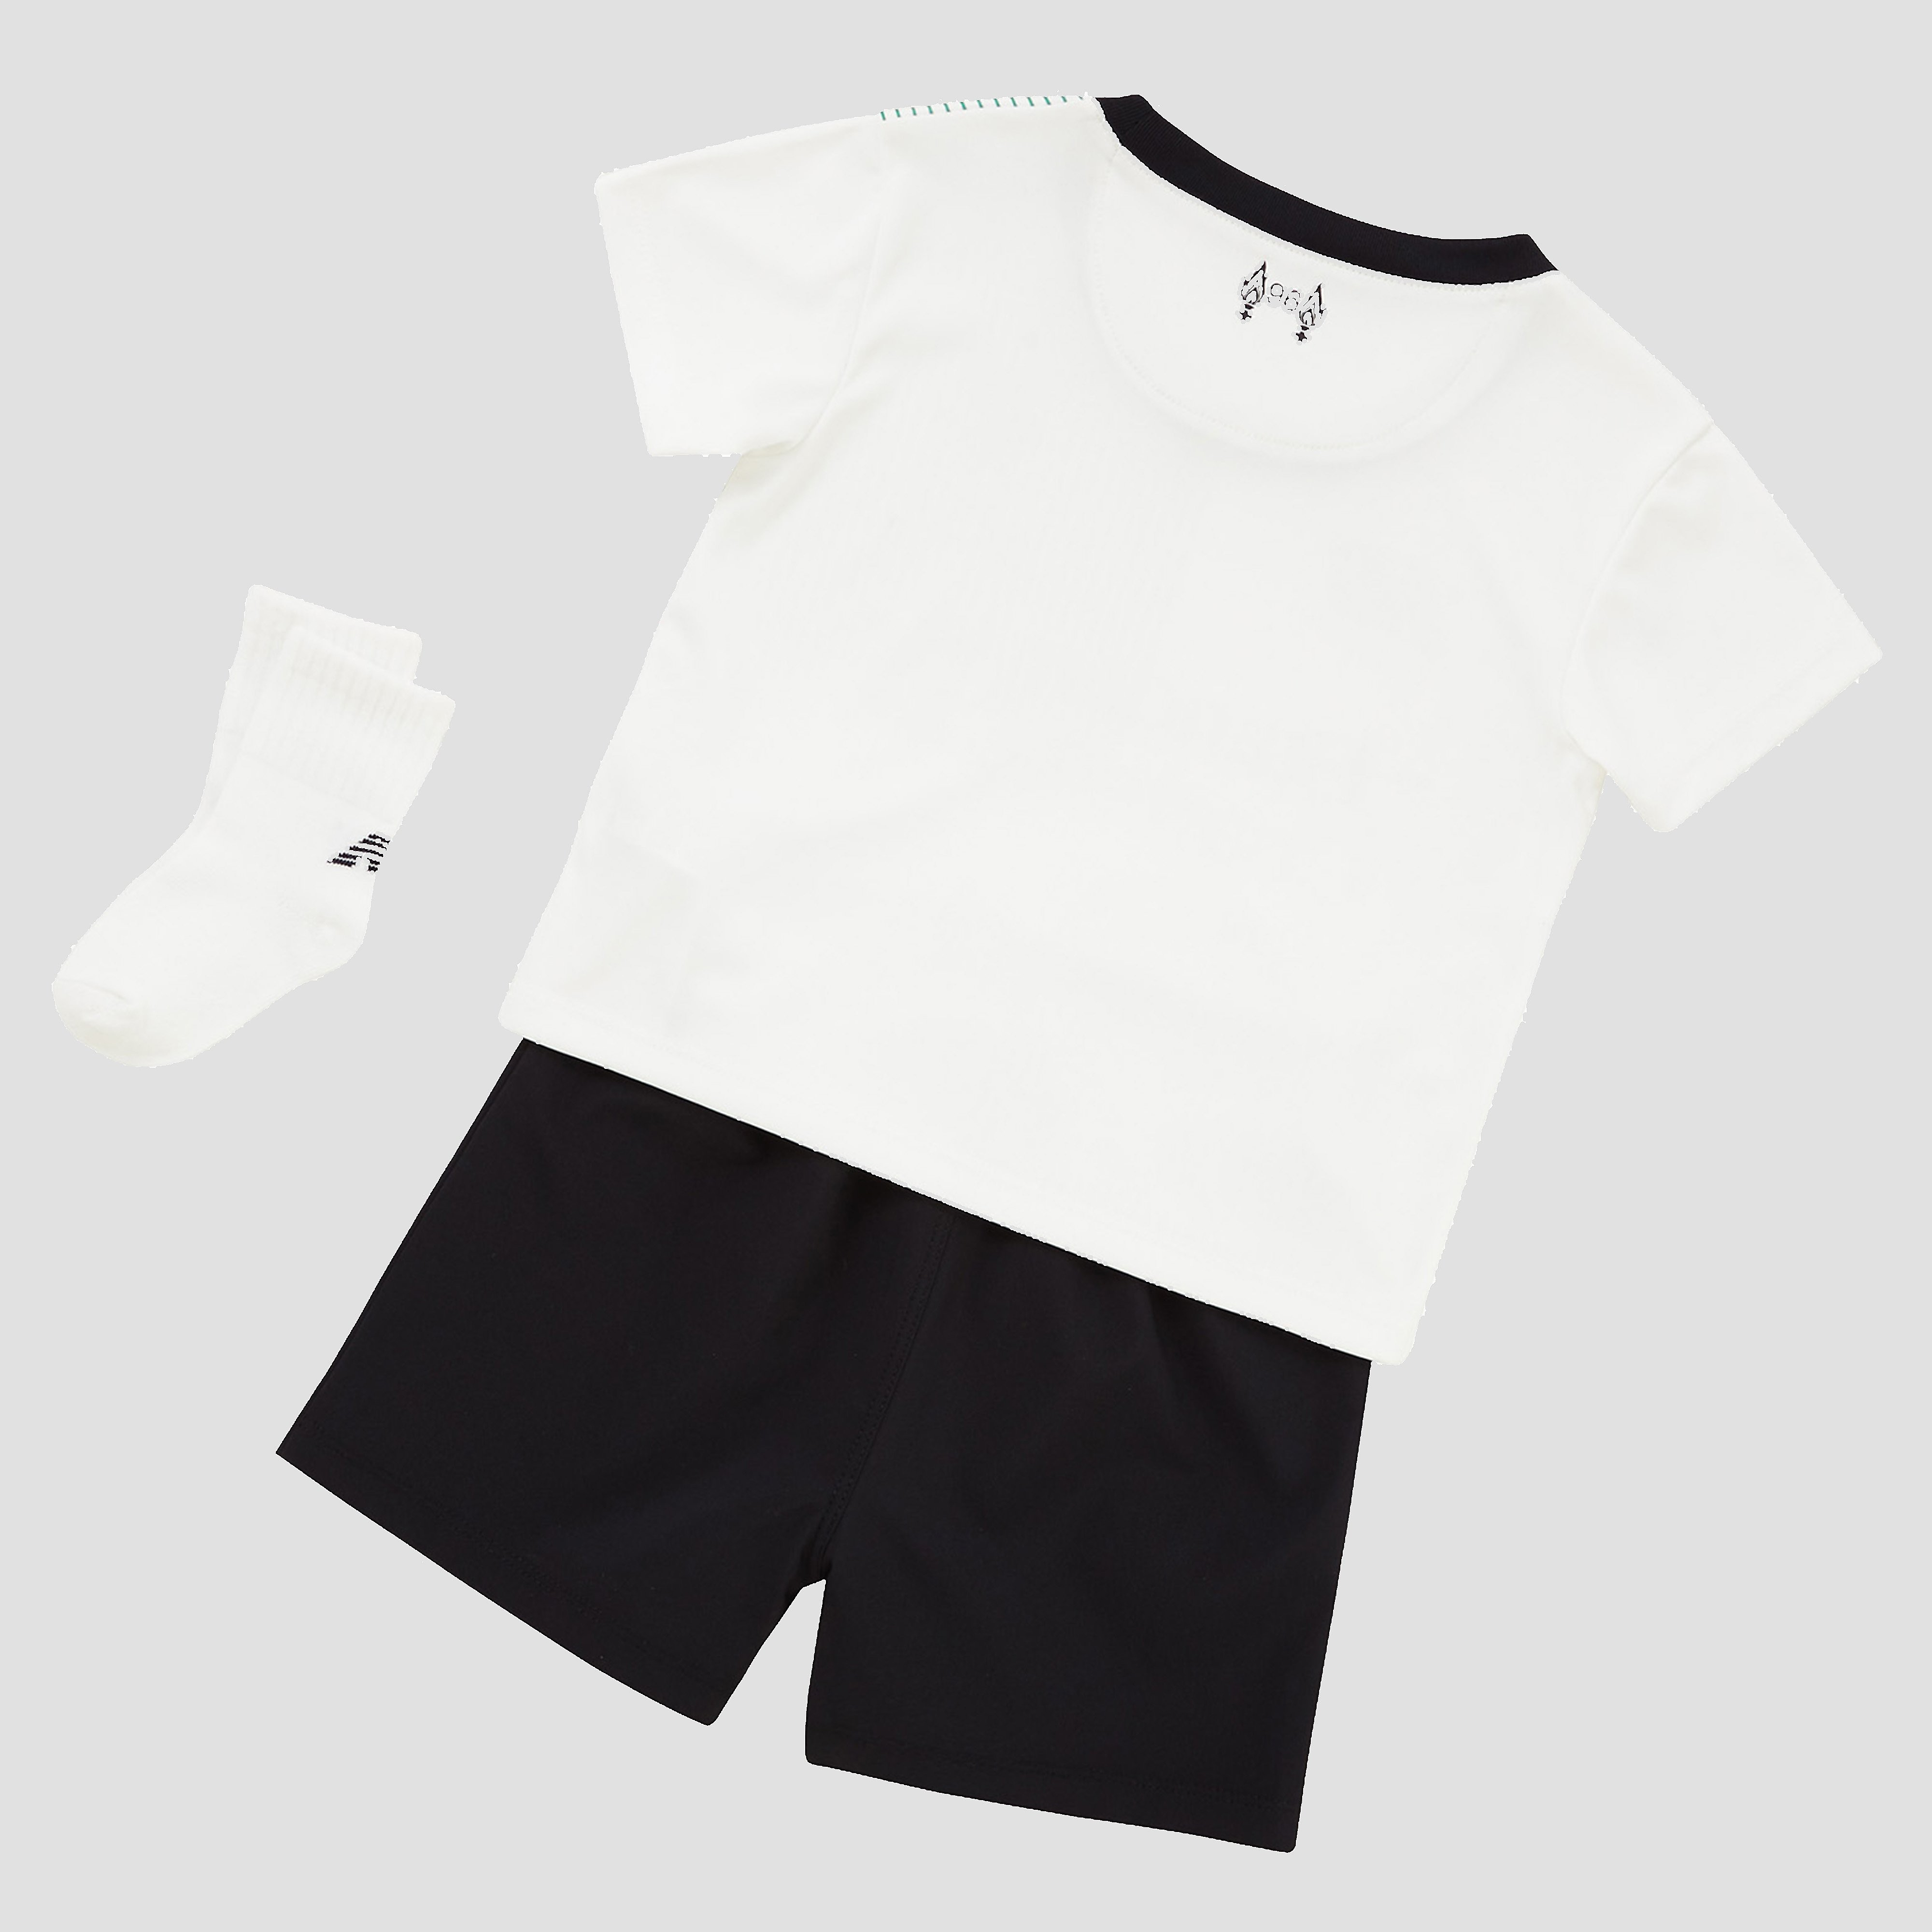 New Balance Liverpool FC 2017/18 Away Kit Infant